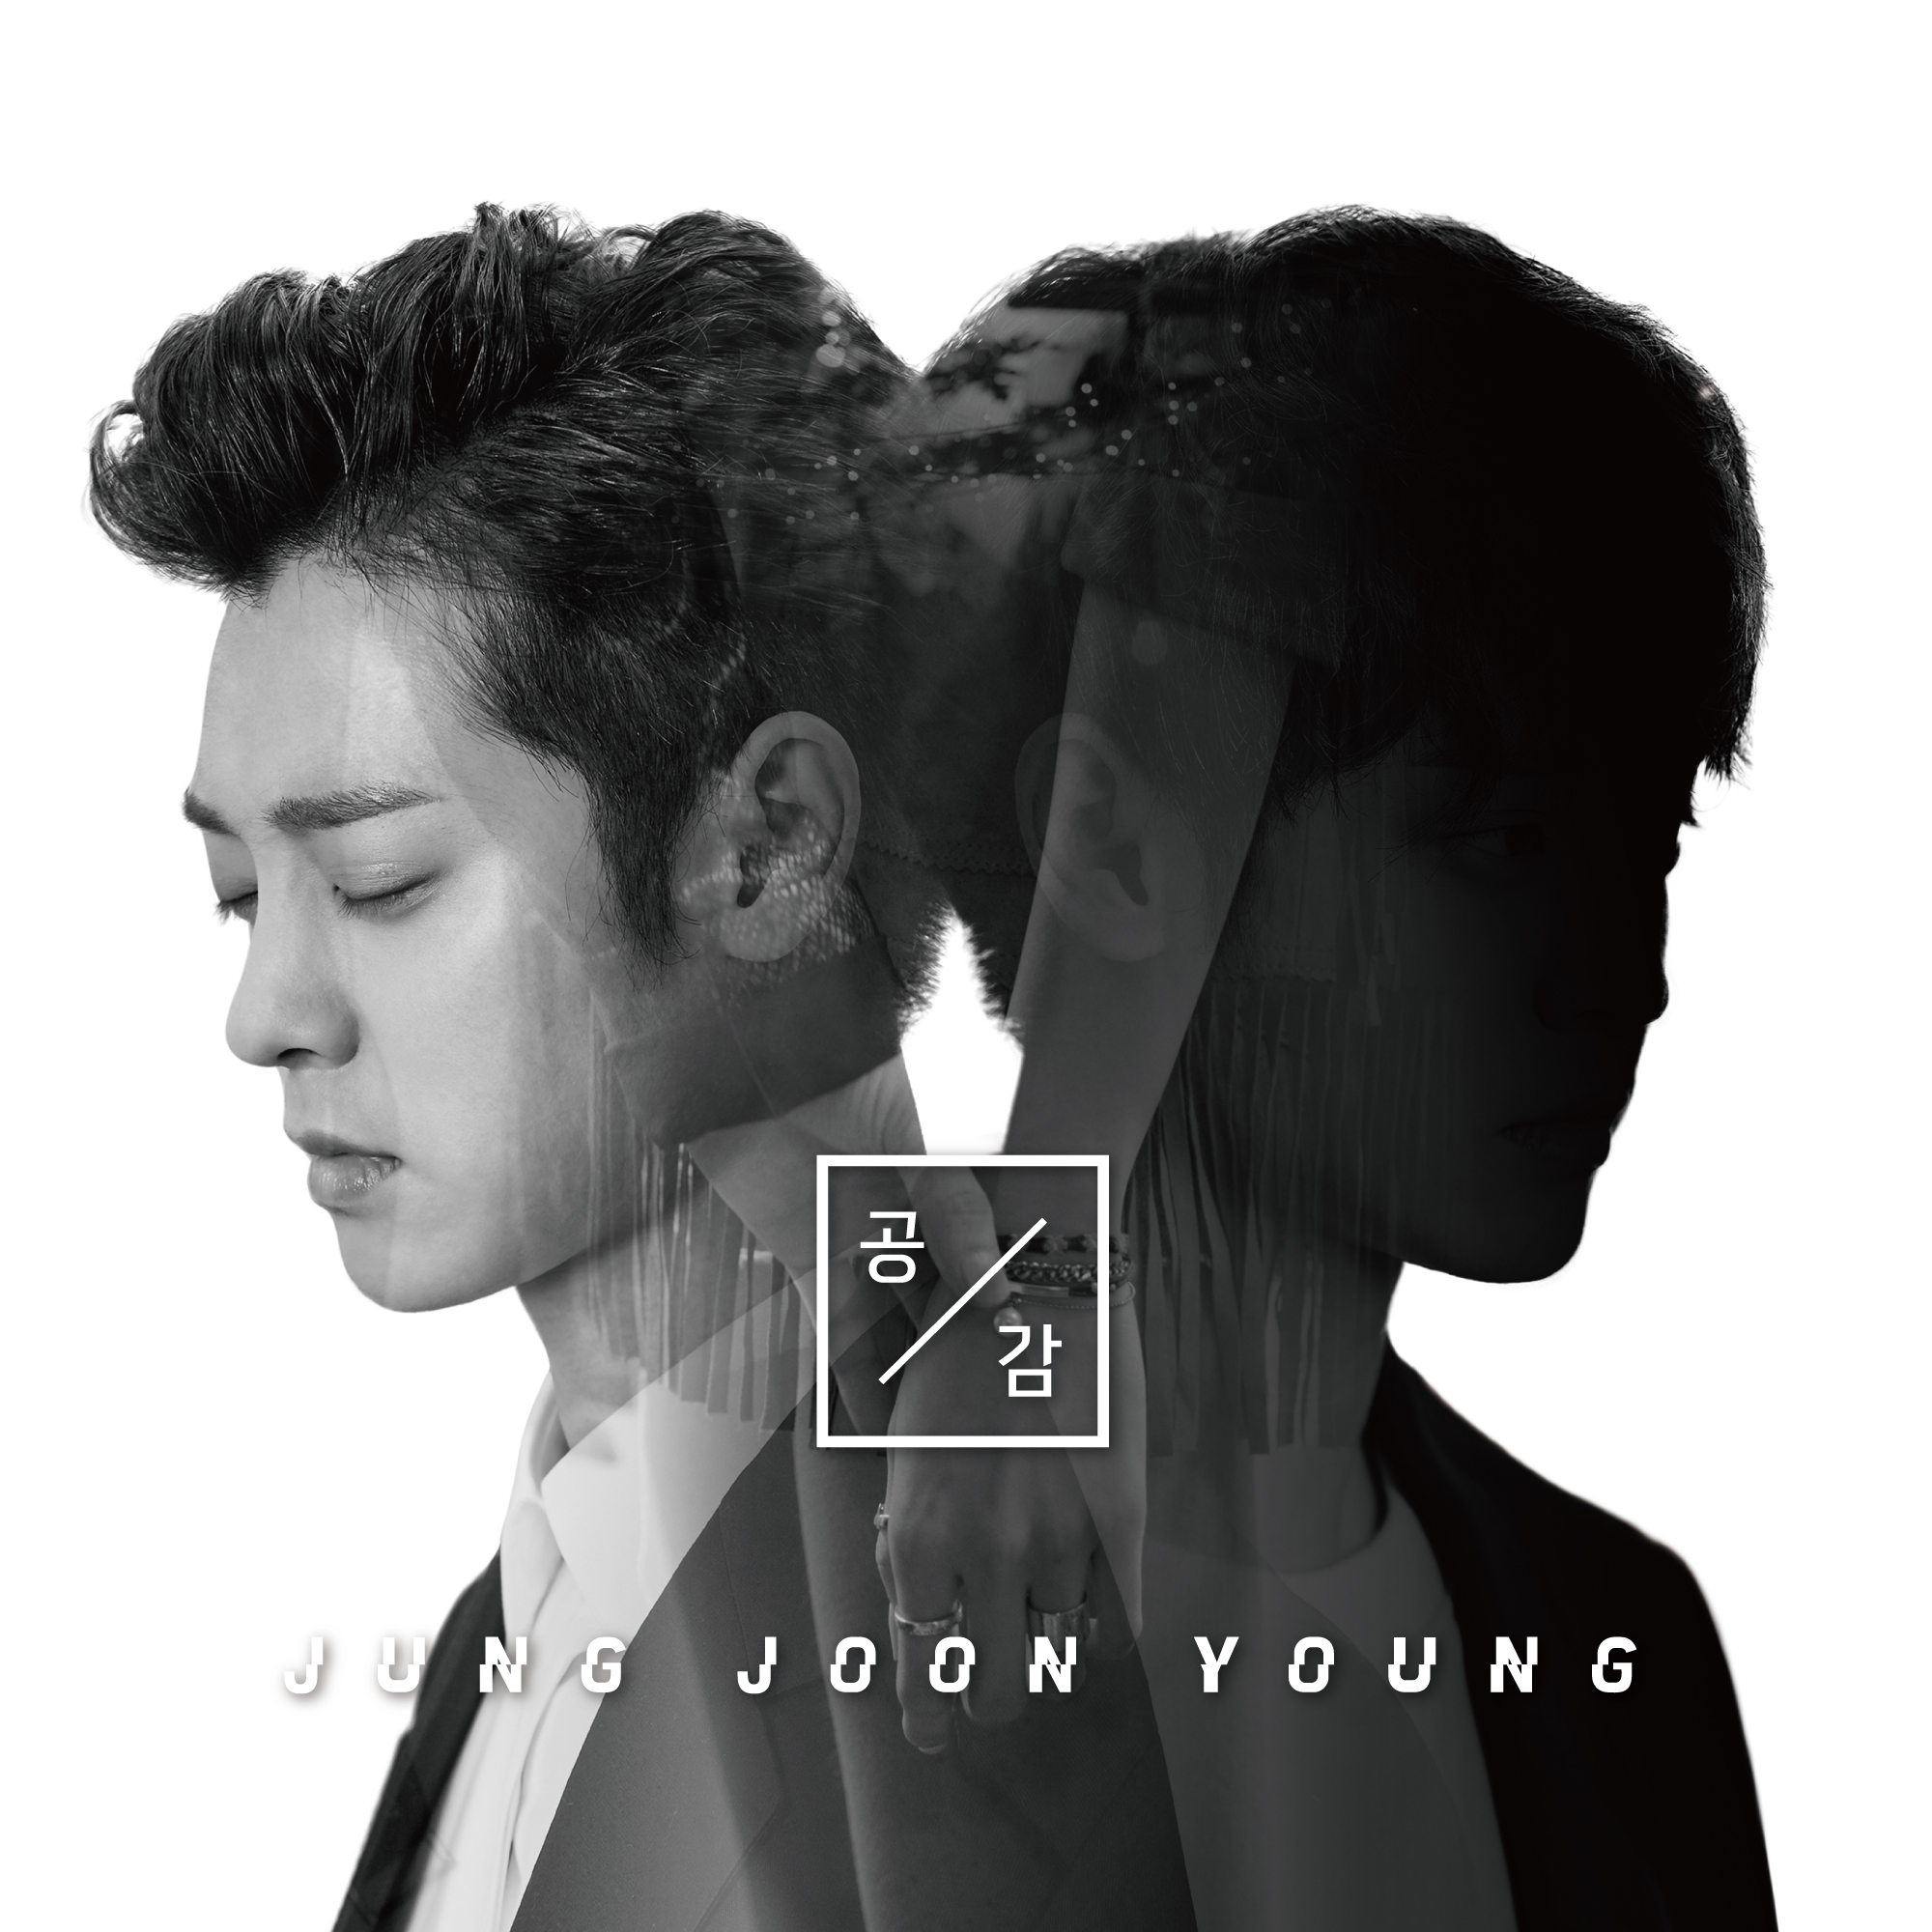 Jung Joon Young with solo single album Sympathy on Febuary 24 2016